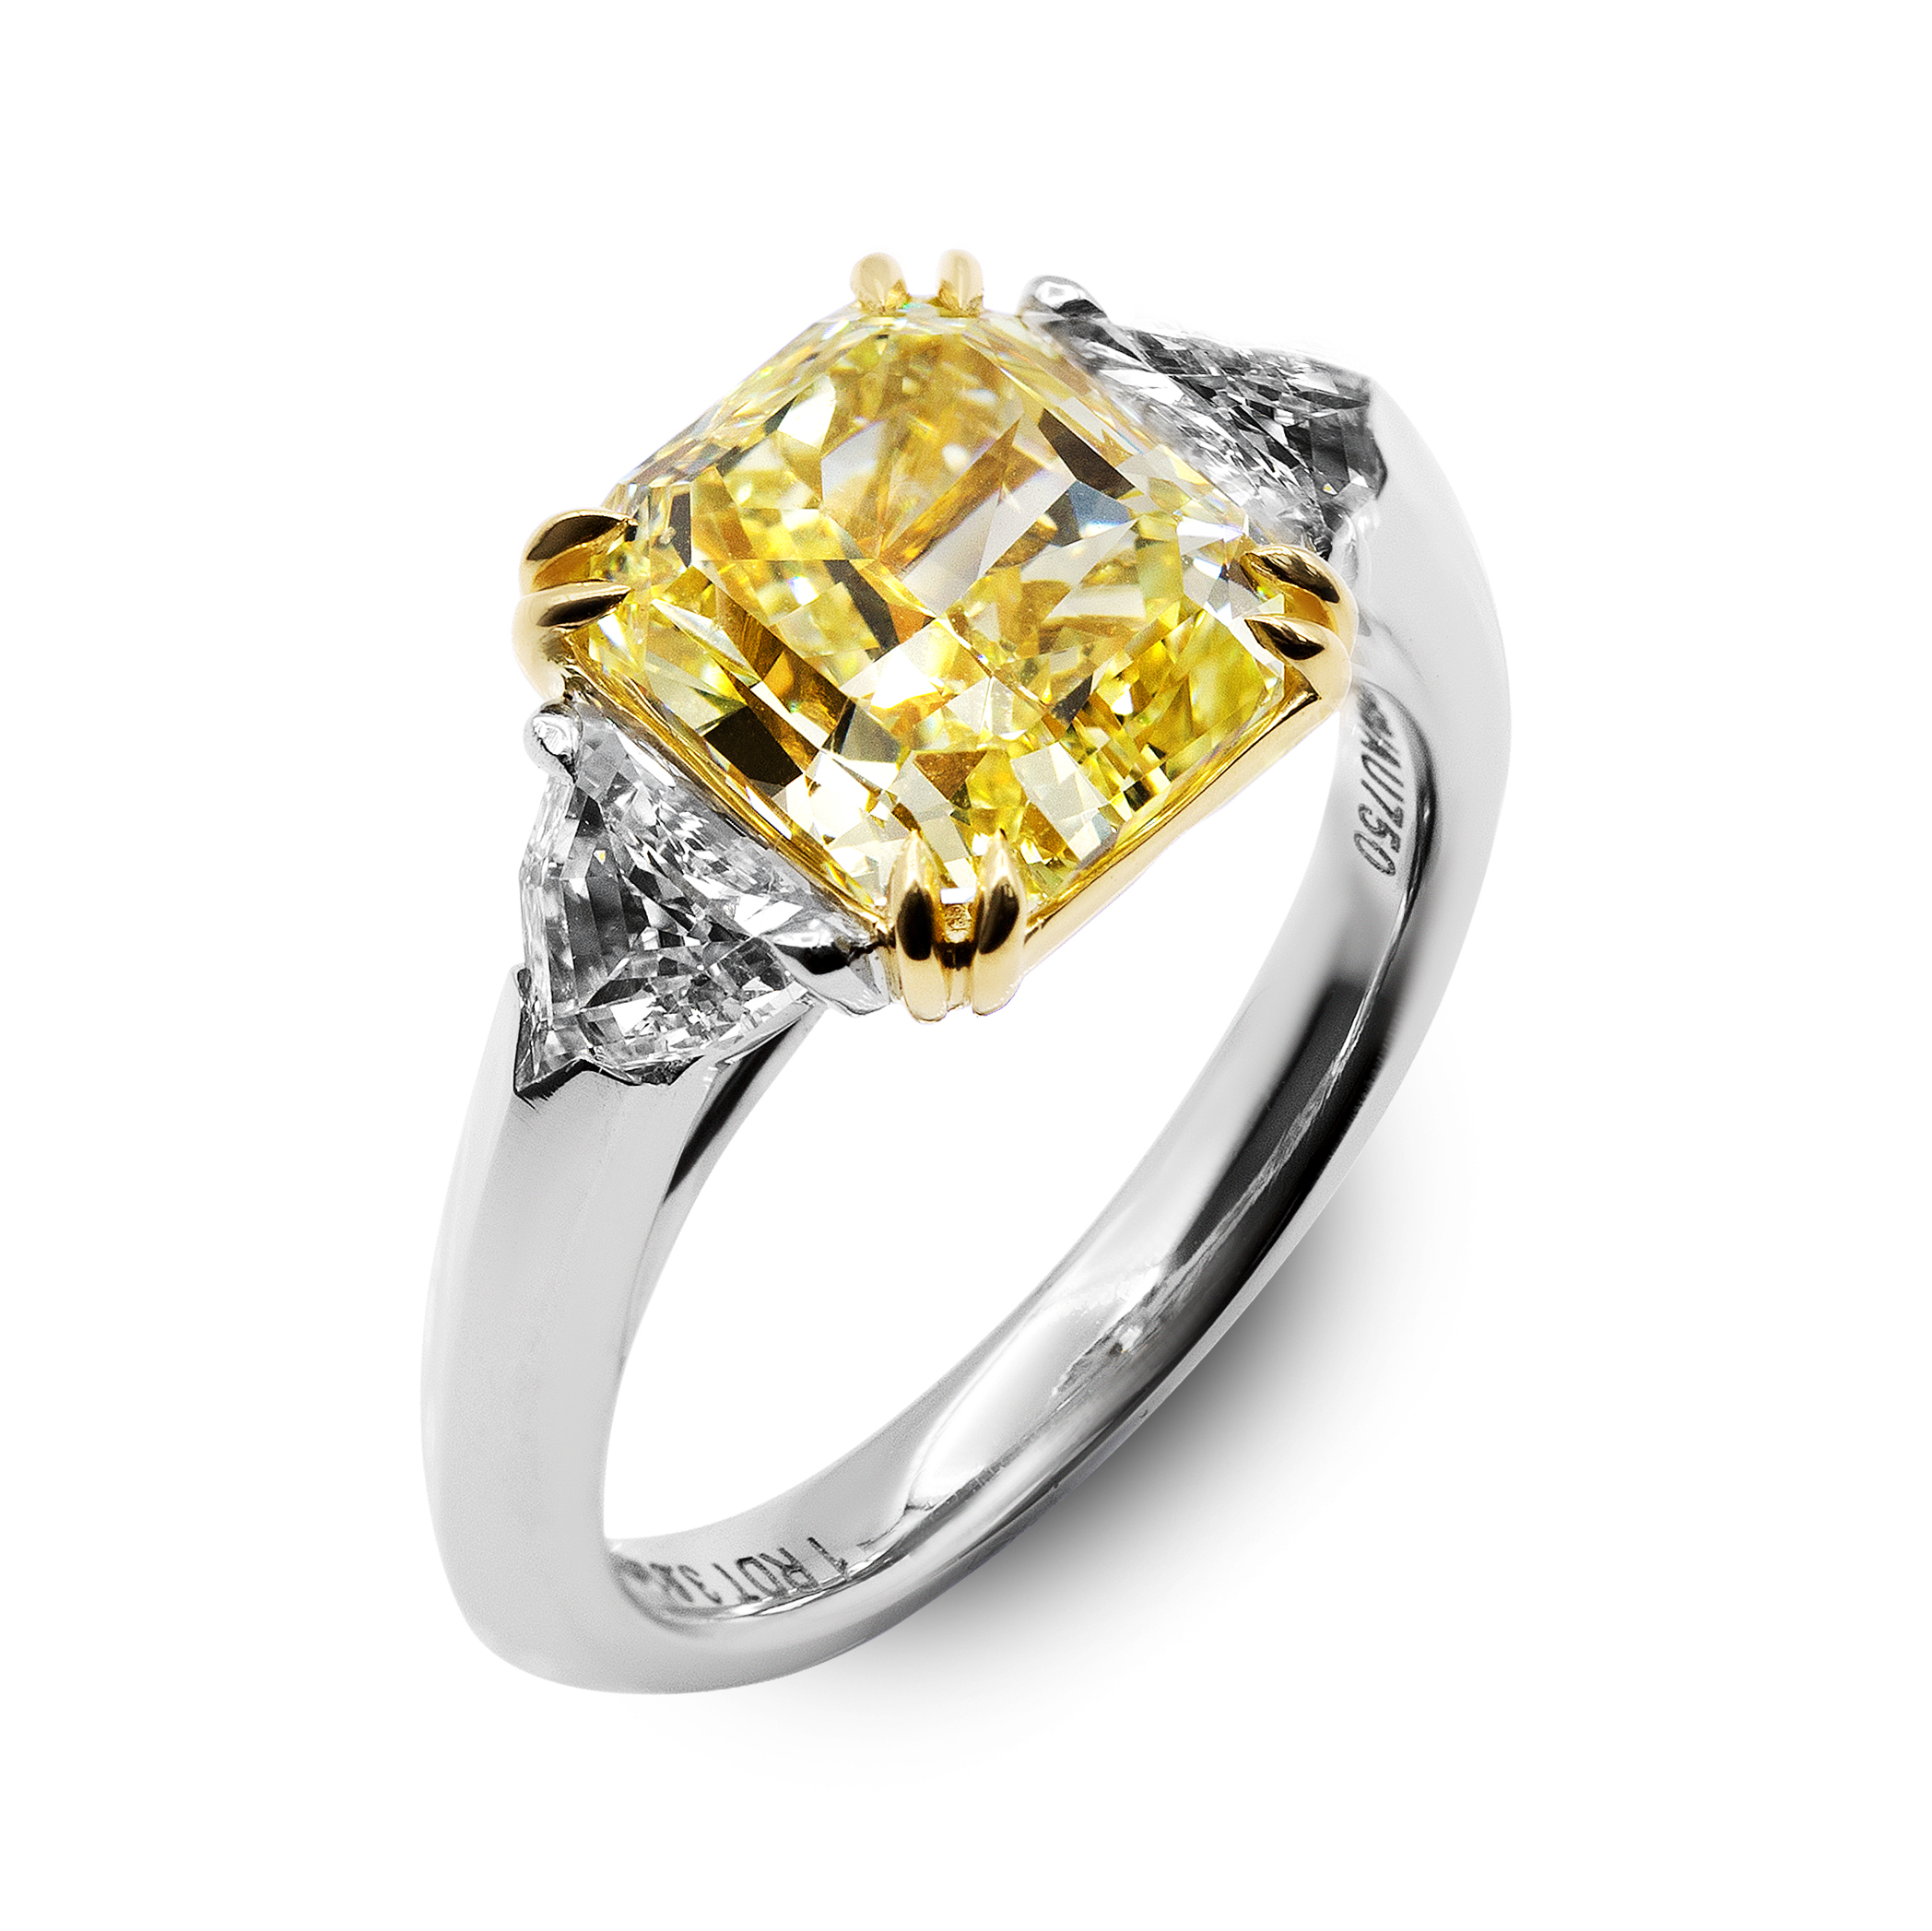 3 Stone Radiant Cut Fancy Yellow Diamond Engagement Ring Intended For Radiant Yellow Diamond Rings (View 17 of 25)